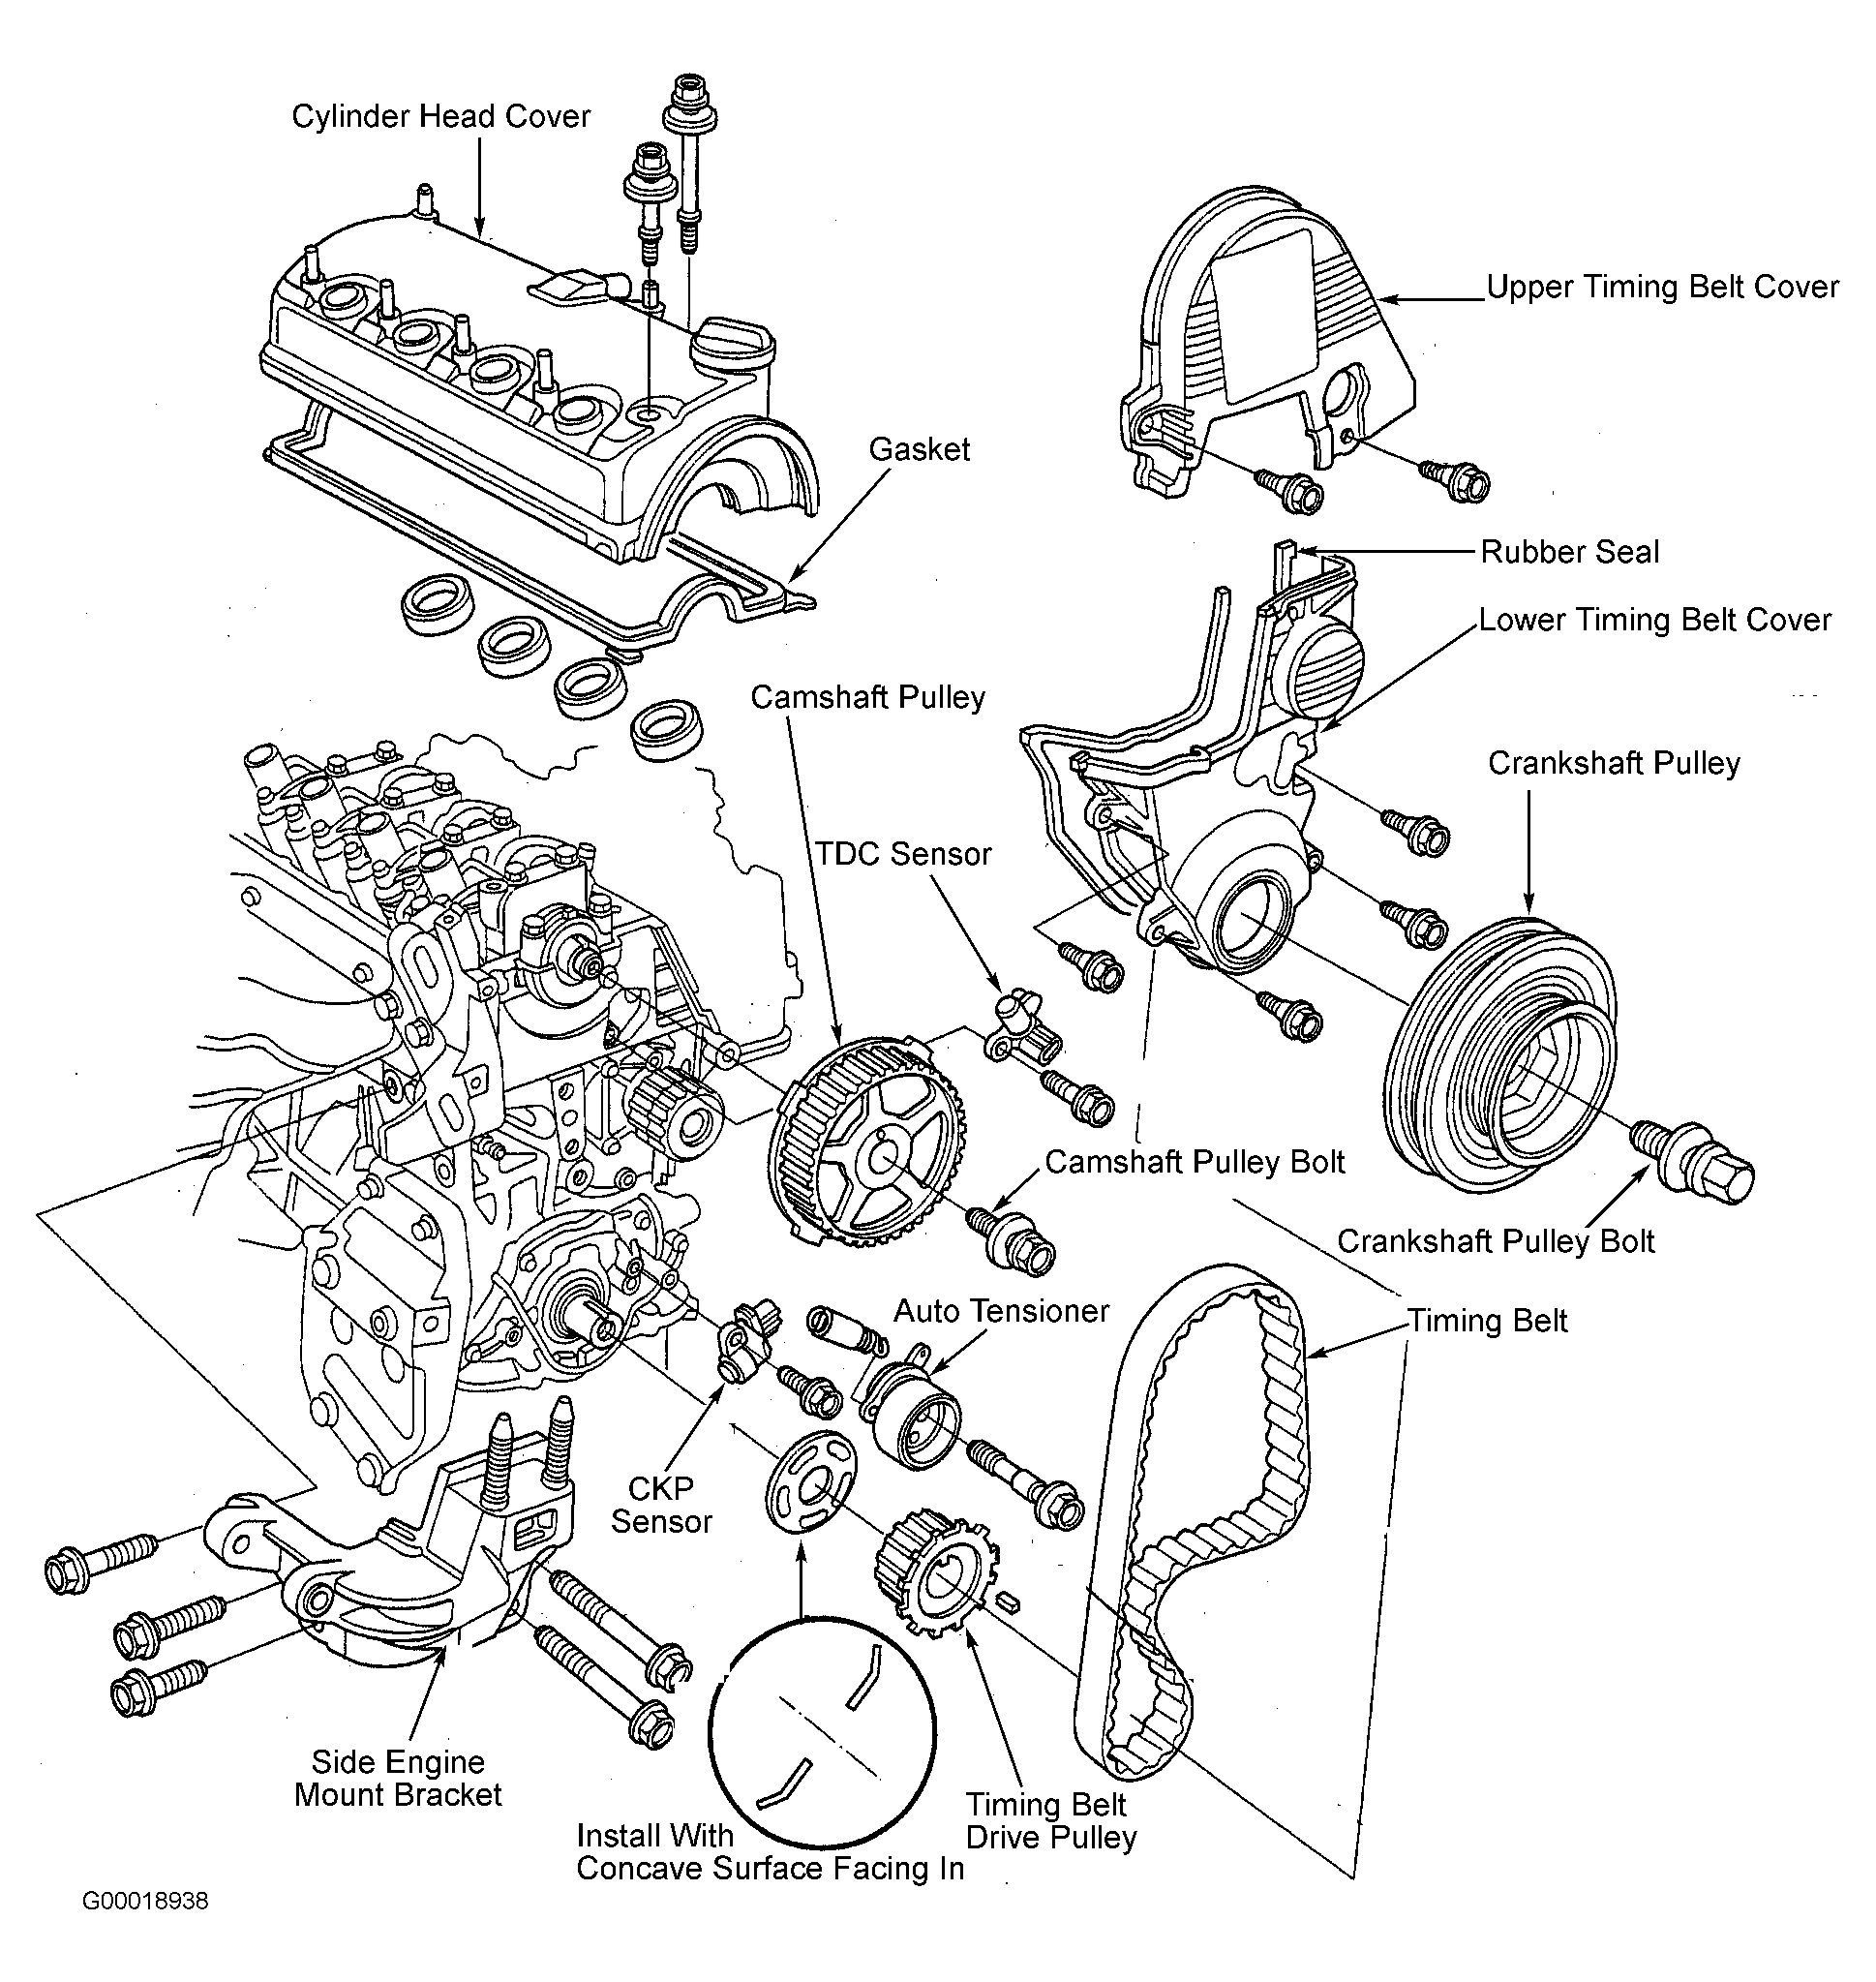 Honda Crv Engine Diagram Unlimited Wiring Diagram 2004 Honda Cr V Engine Diagram 2003 Honda Crv Engine Diagram 3 In 2020 Honda Civic Engine Honda Honda Crv